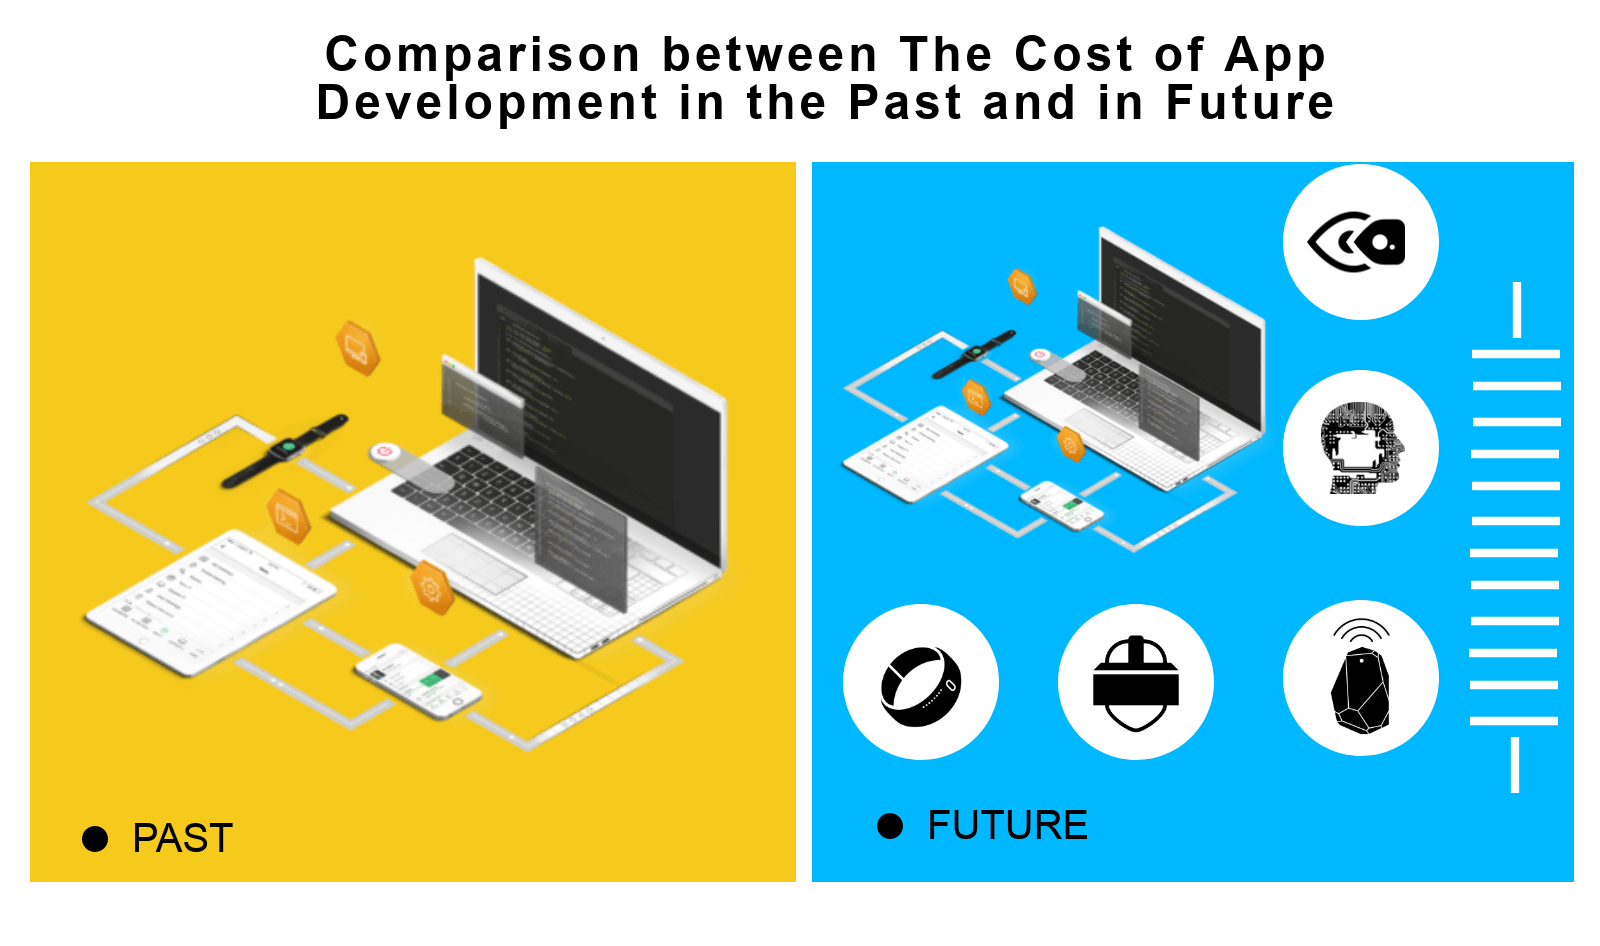 Comparison-between-The-Cost-of-App-Development-in-the-Past-and-in-Future